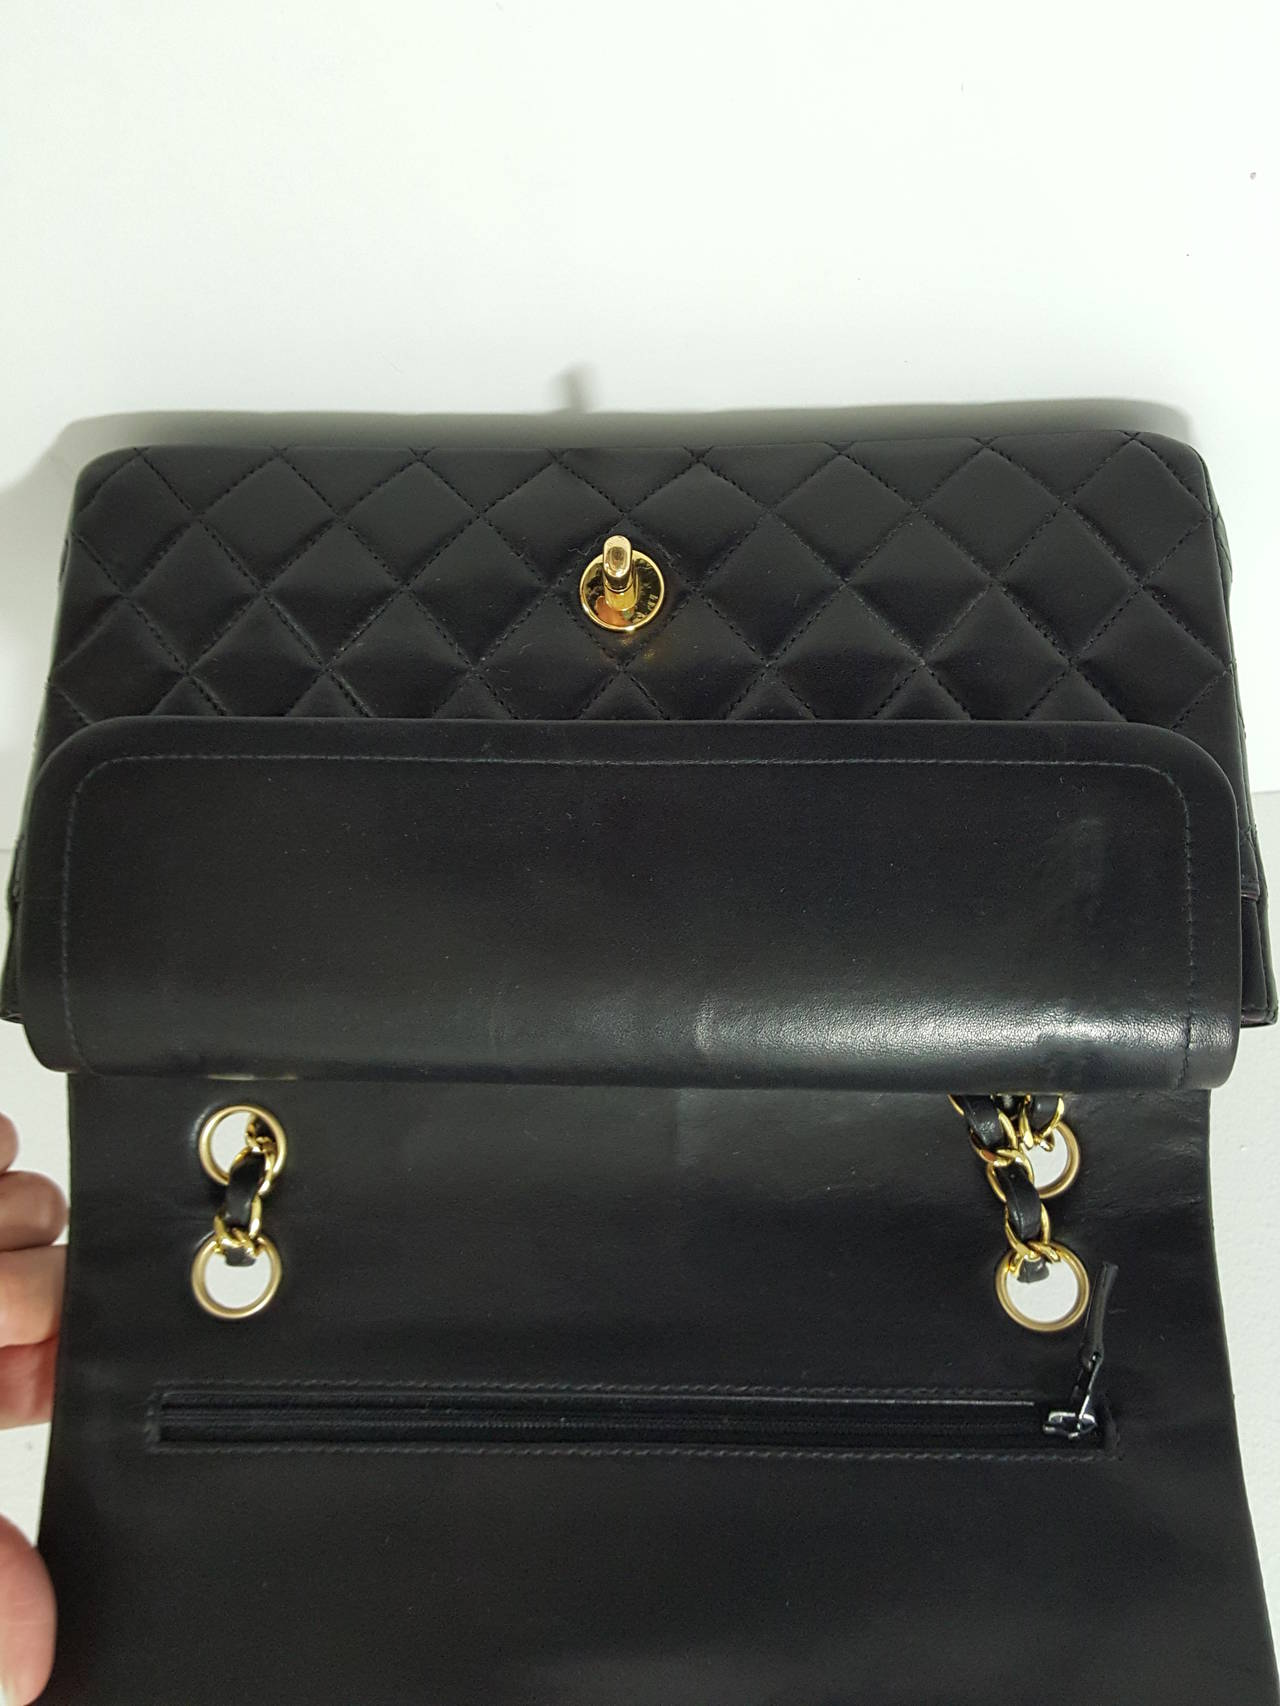 "Chanel Black Lambskin 10"" Classic Double Flap Handbag W/Gold Hardware For Sale 3"